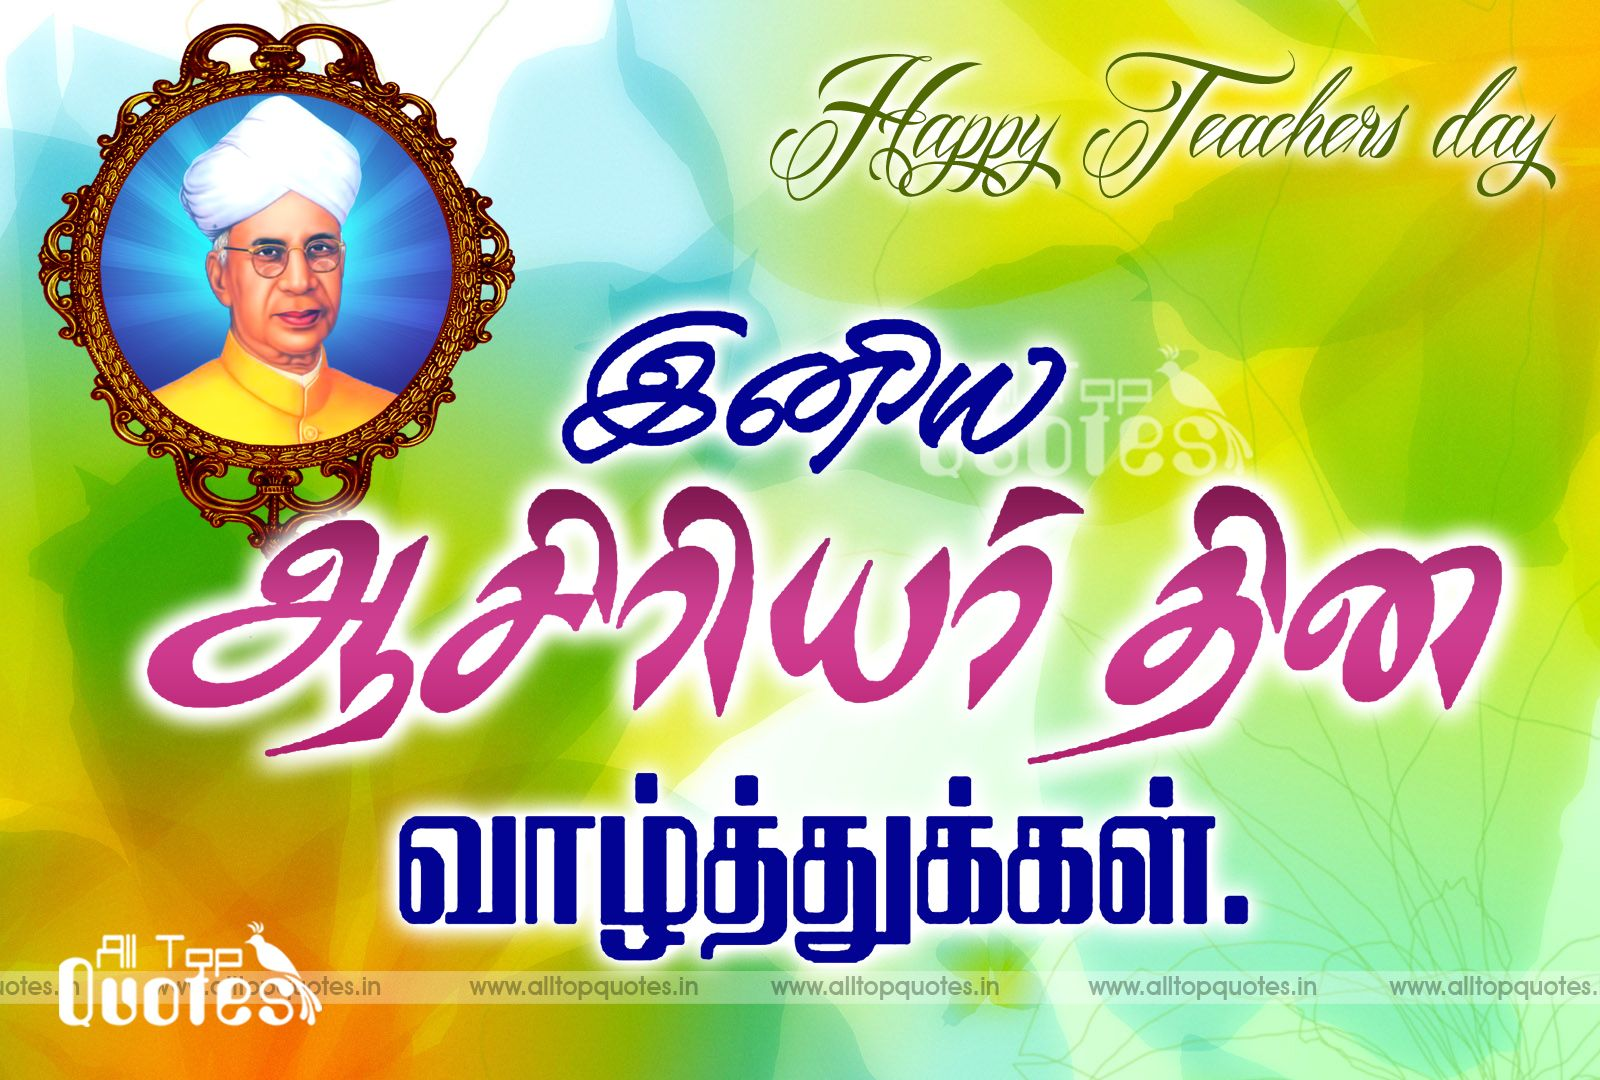 Happy teachers day tamil kavithai quotes All Top Quotes